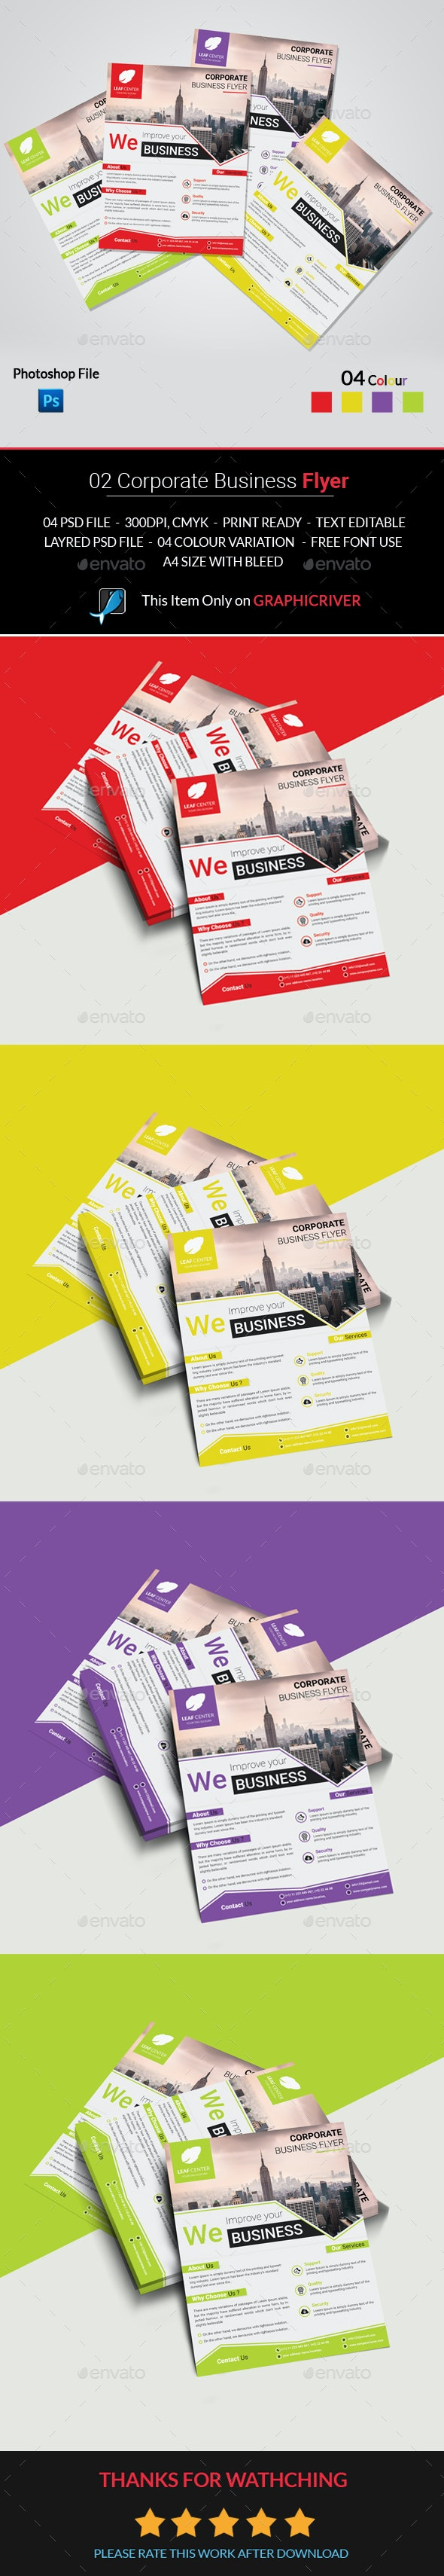 02 Corporate Business Flyer - Corporate Flyers